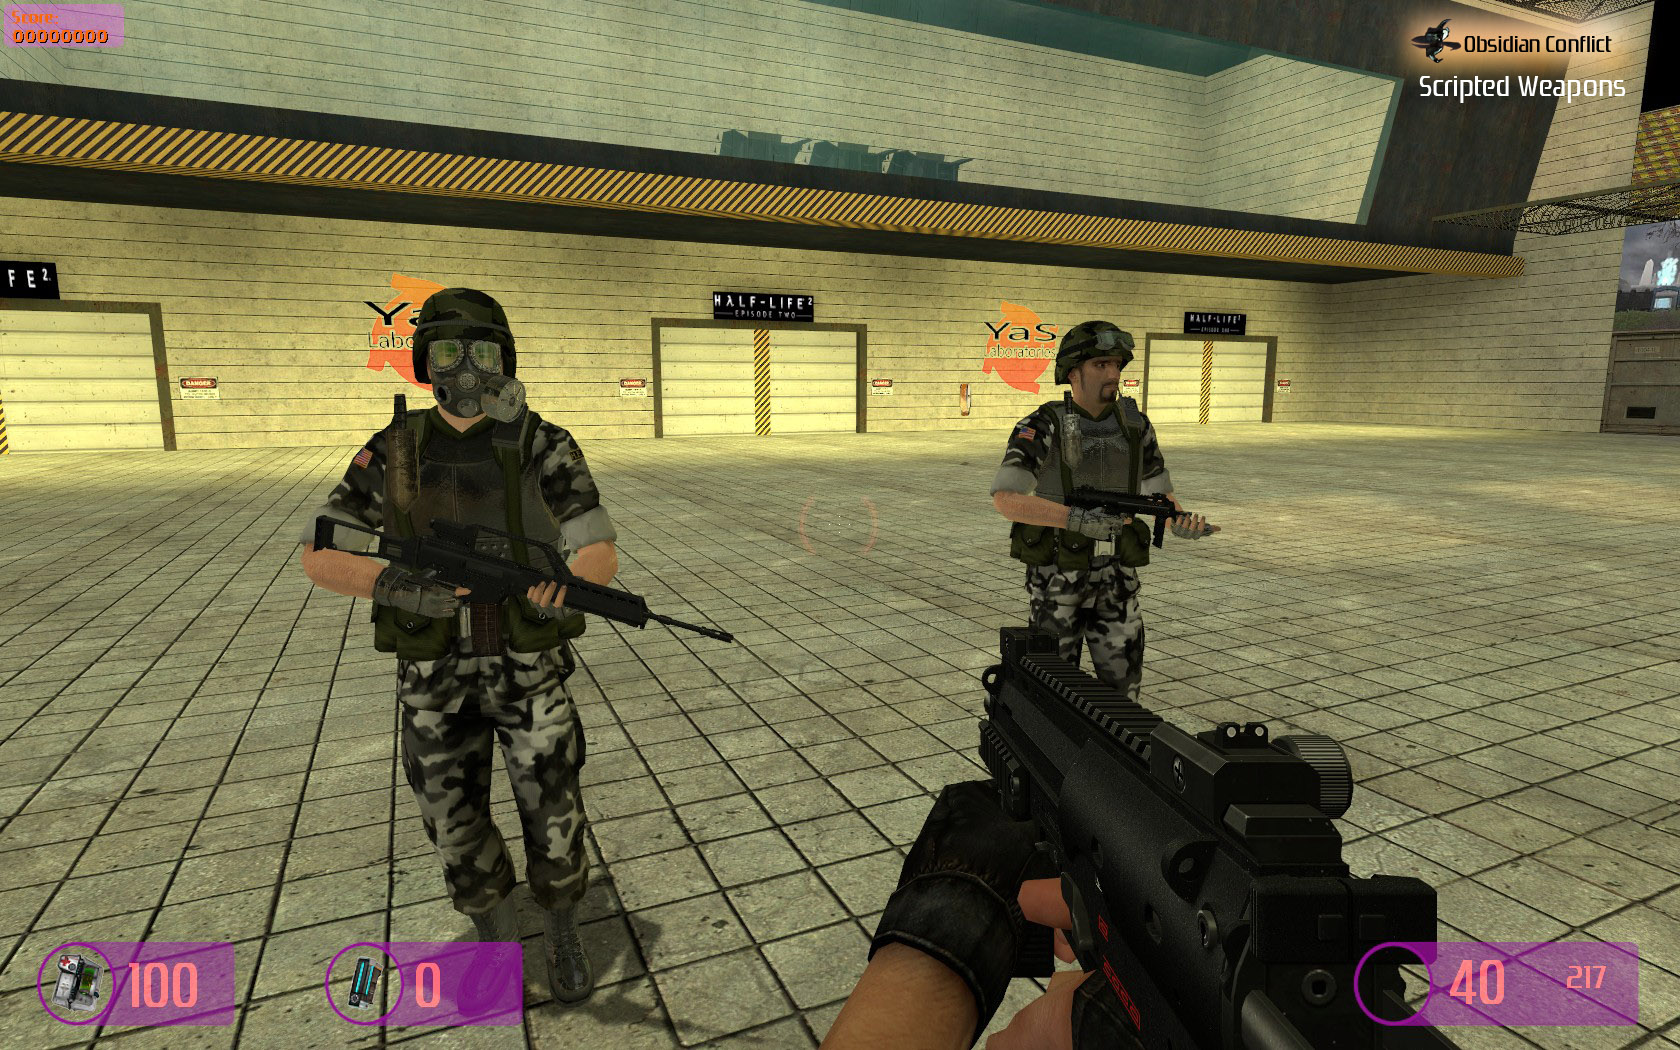 Objectives image - obsidian conflict mod for half-life 2